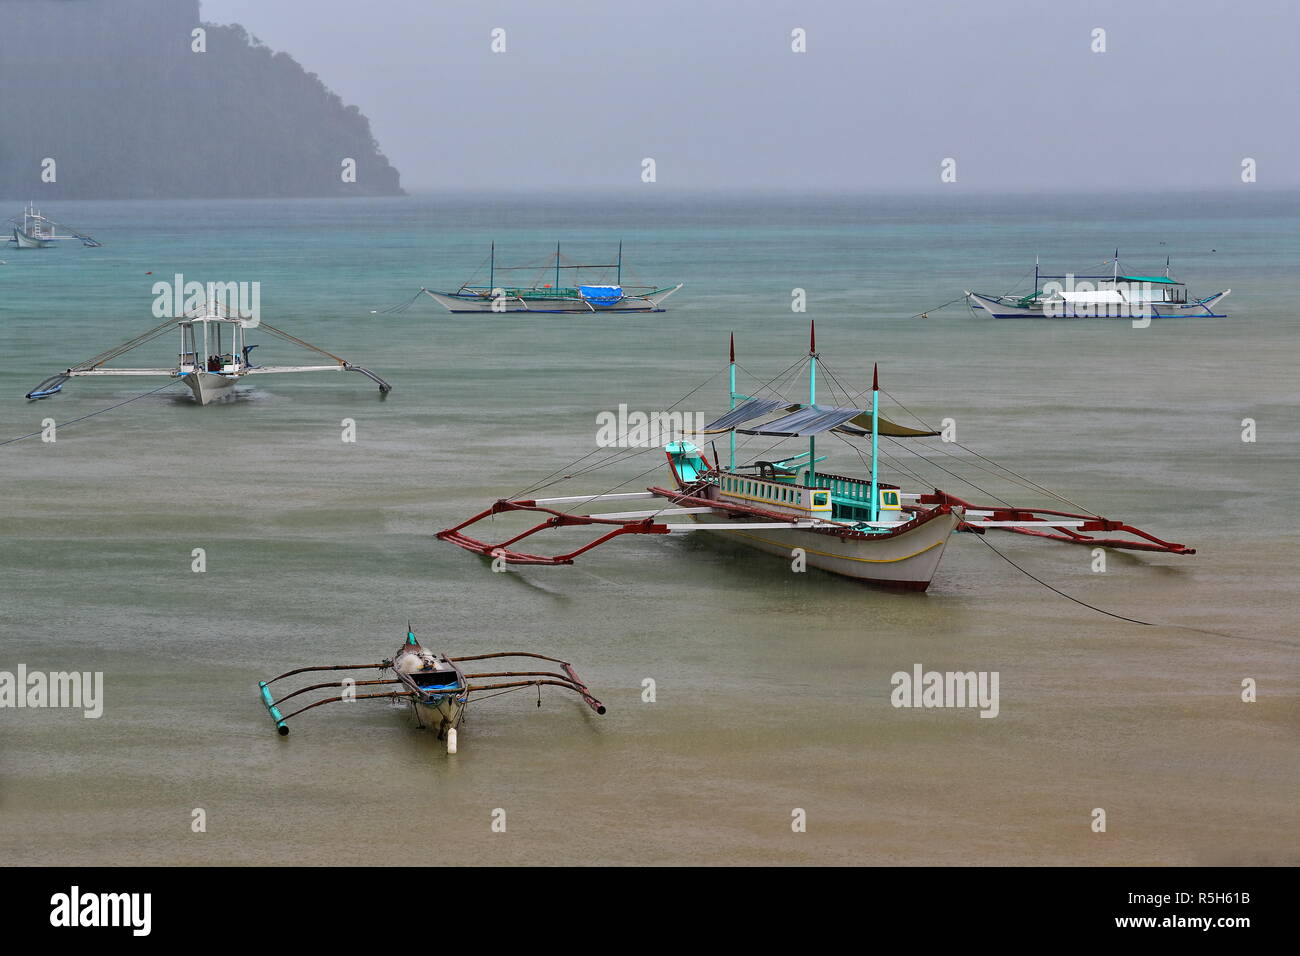 Fishing and tour boats stranded and moored at the beach under heavy rain preventing them from going out to sea to carry out their usual tasks-fishing  - Stock Image